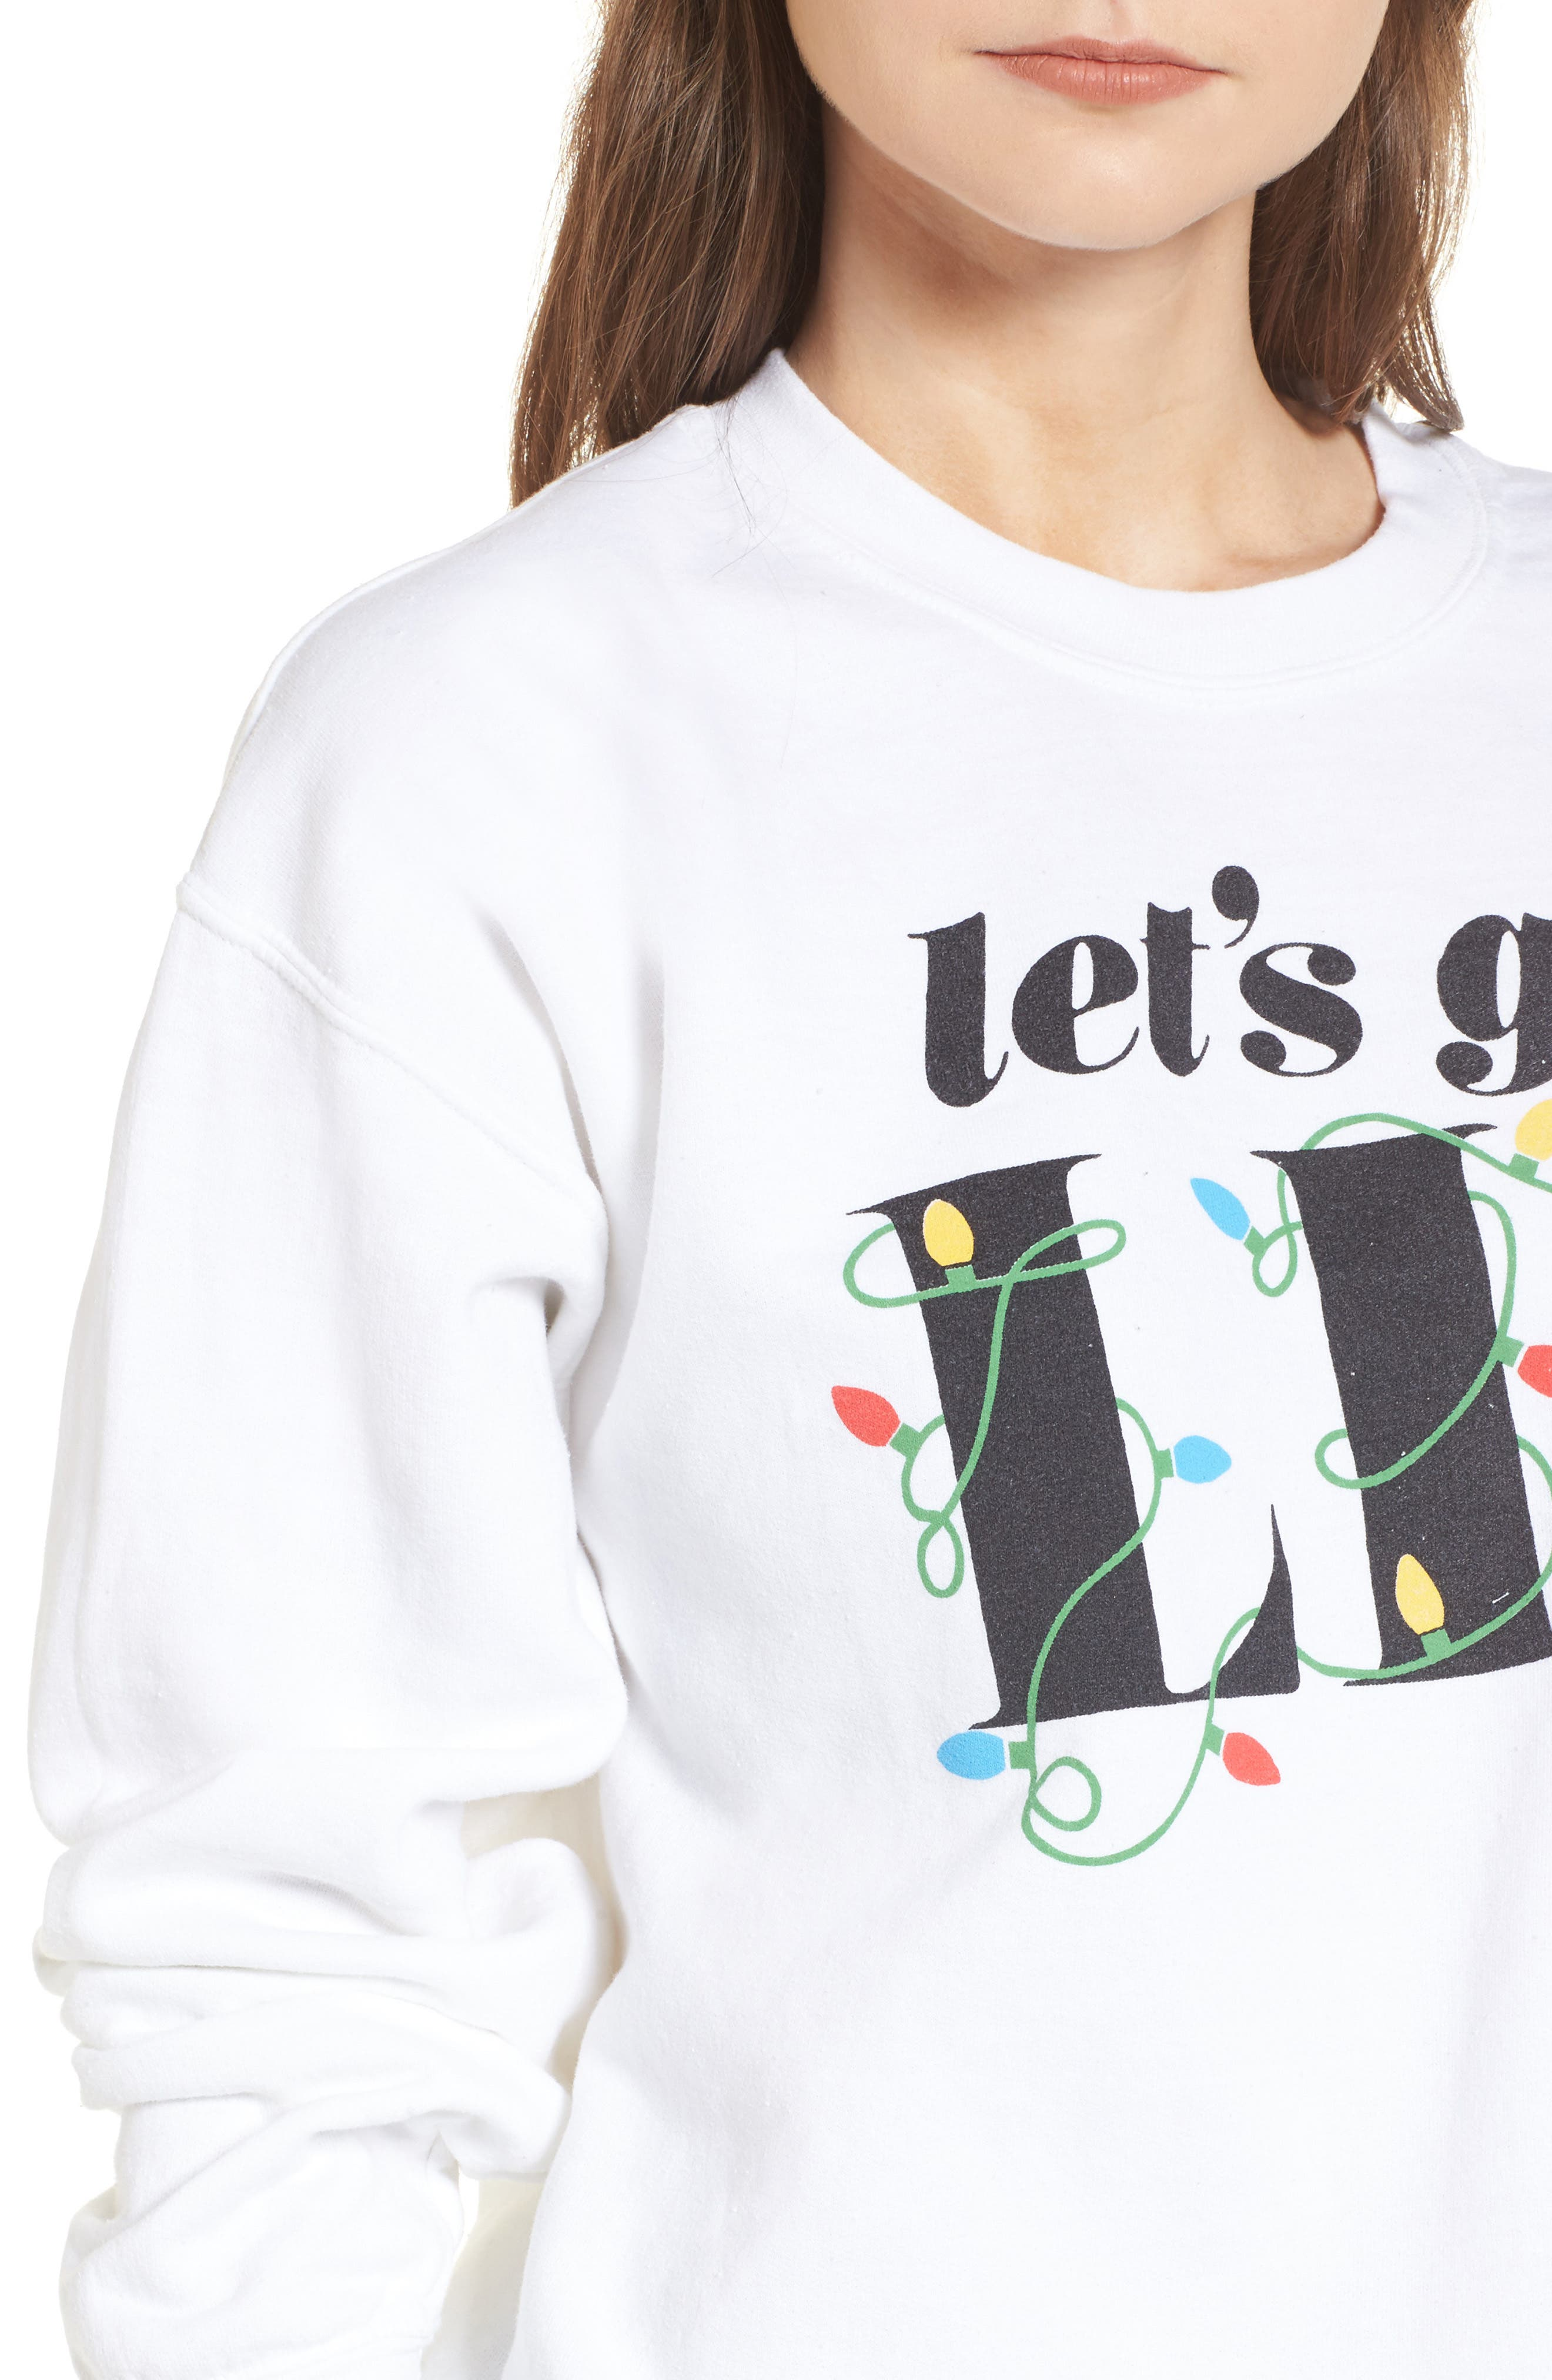 Let's Get Lit Sweatshirt,                             Alternate thumbnail 4, color,                             White